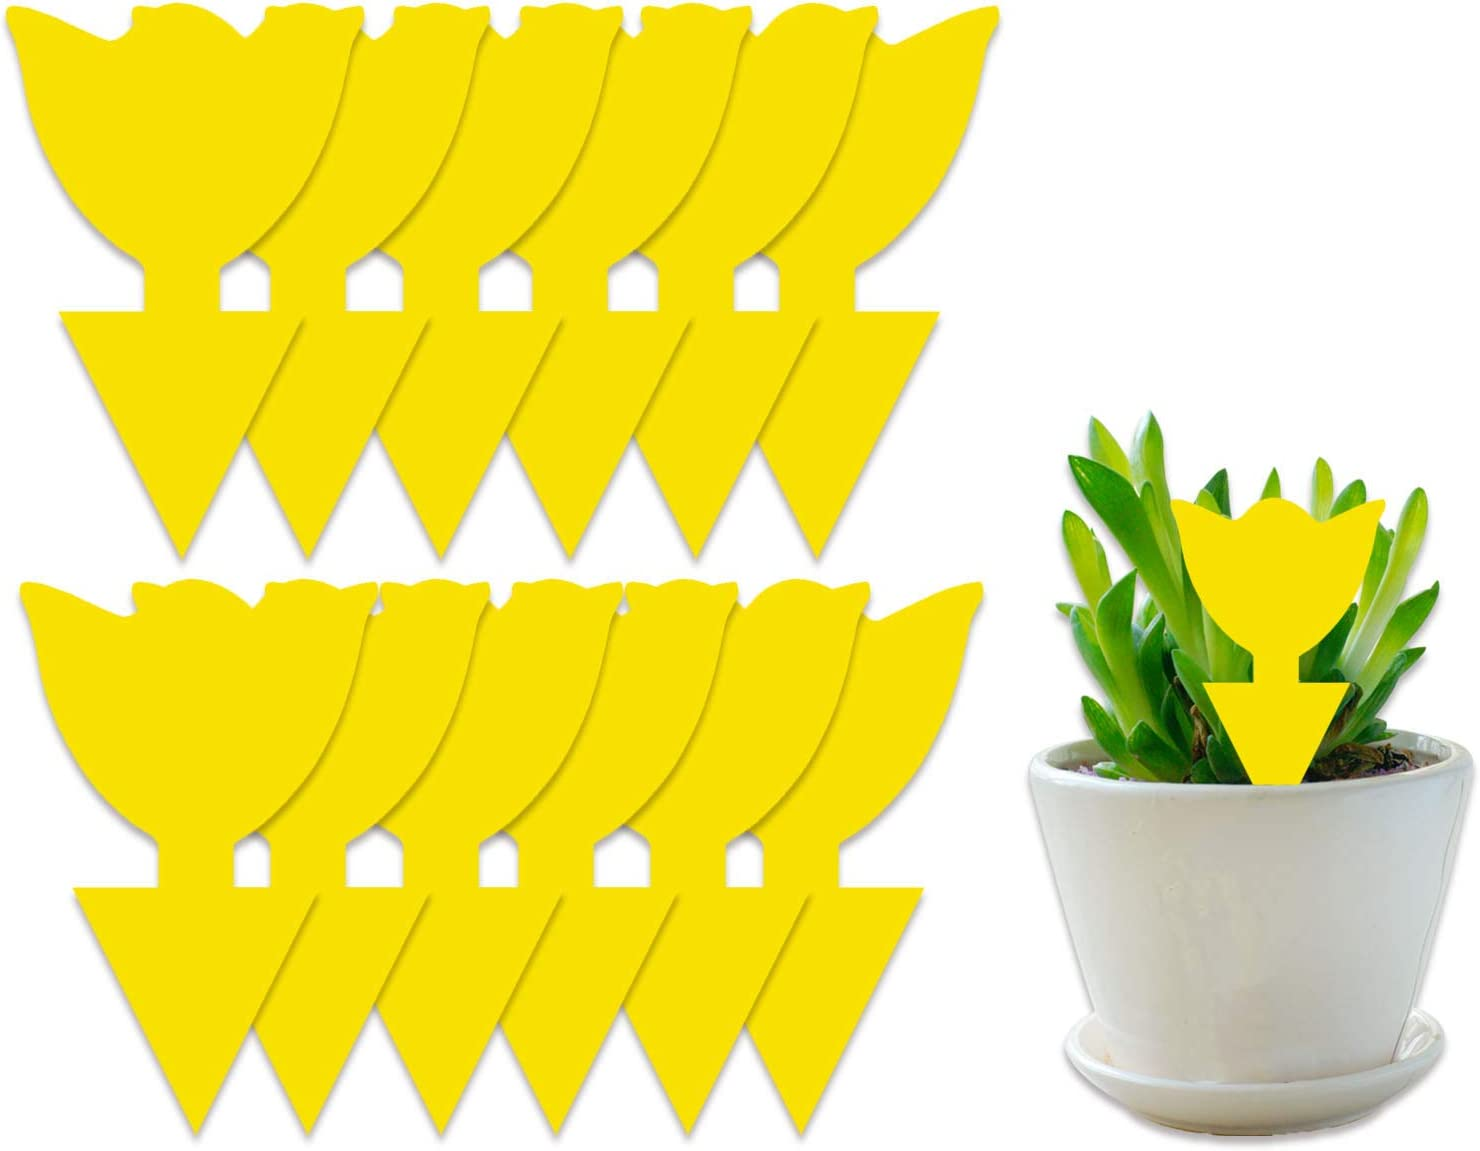 COSYWORLD 12 Pack Sticky Traps for Indoor/Outdoor Use, Gnat Trap for Flying Plant Insect Such as Fungus Gnats, Whiteflies, Aphids, Leafminers - Disposable Glue Fruit Fly Traps